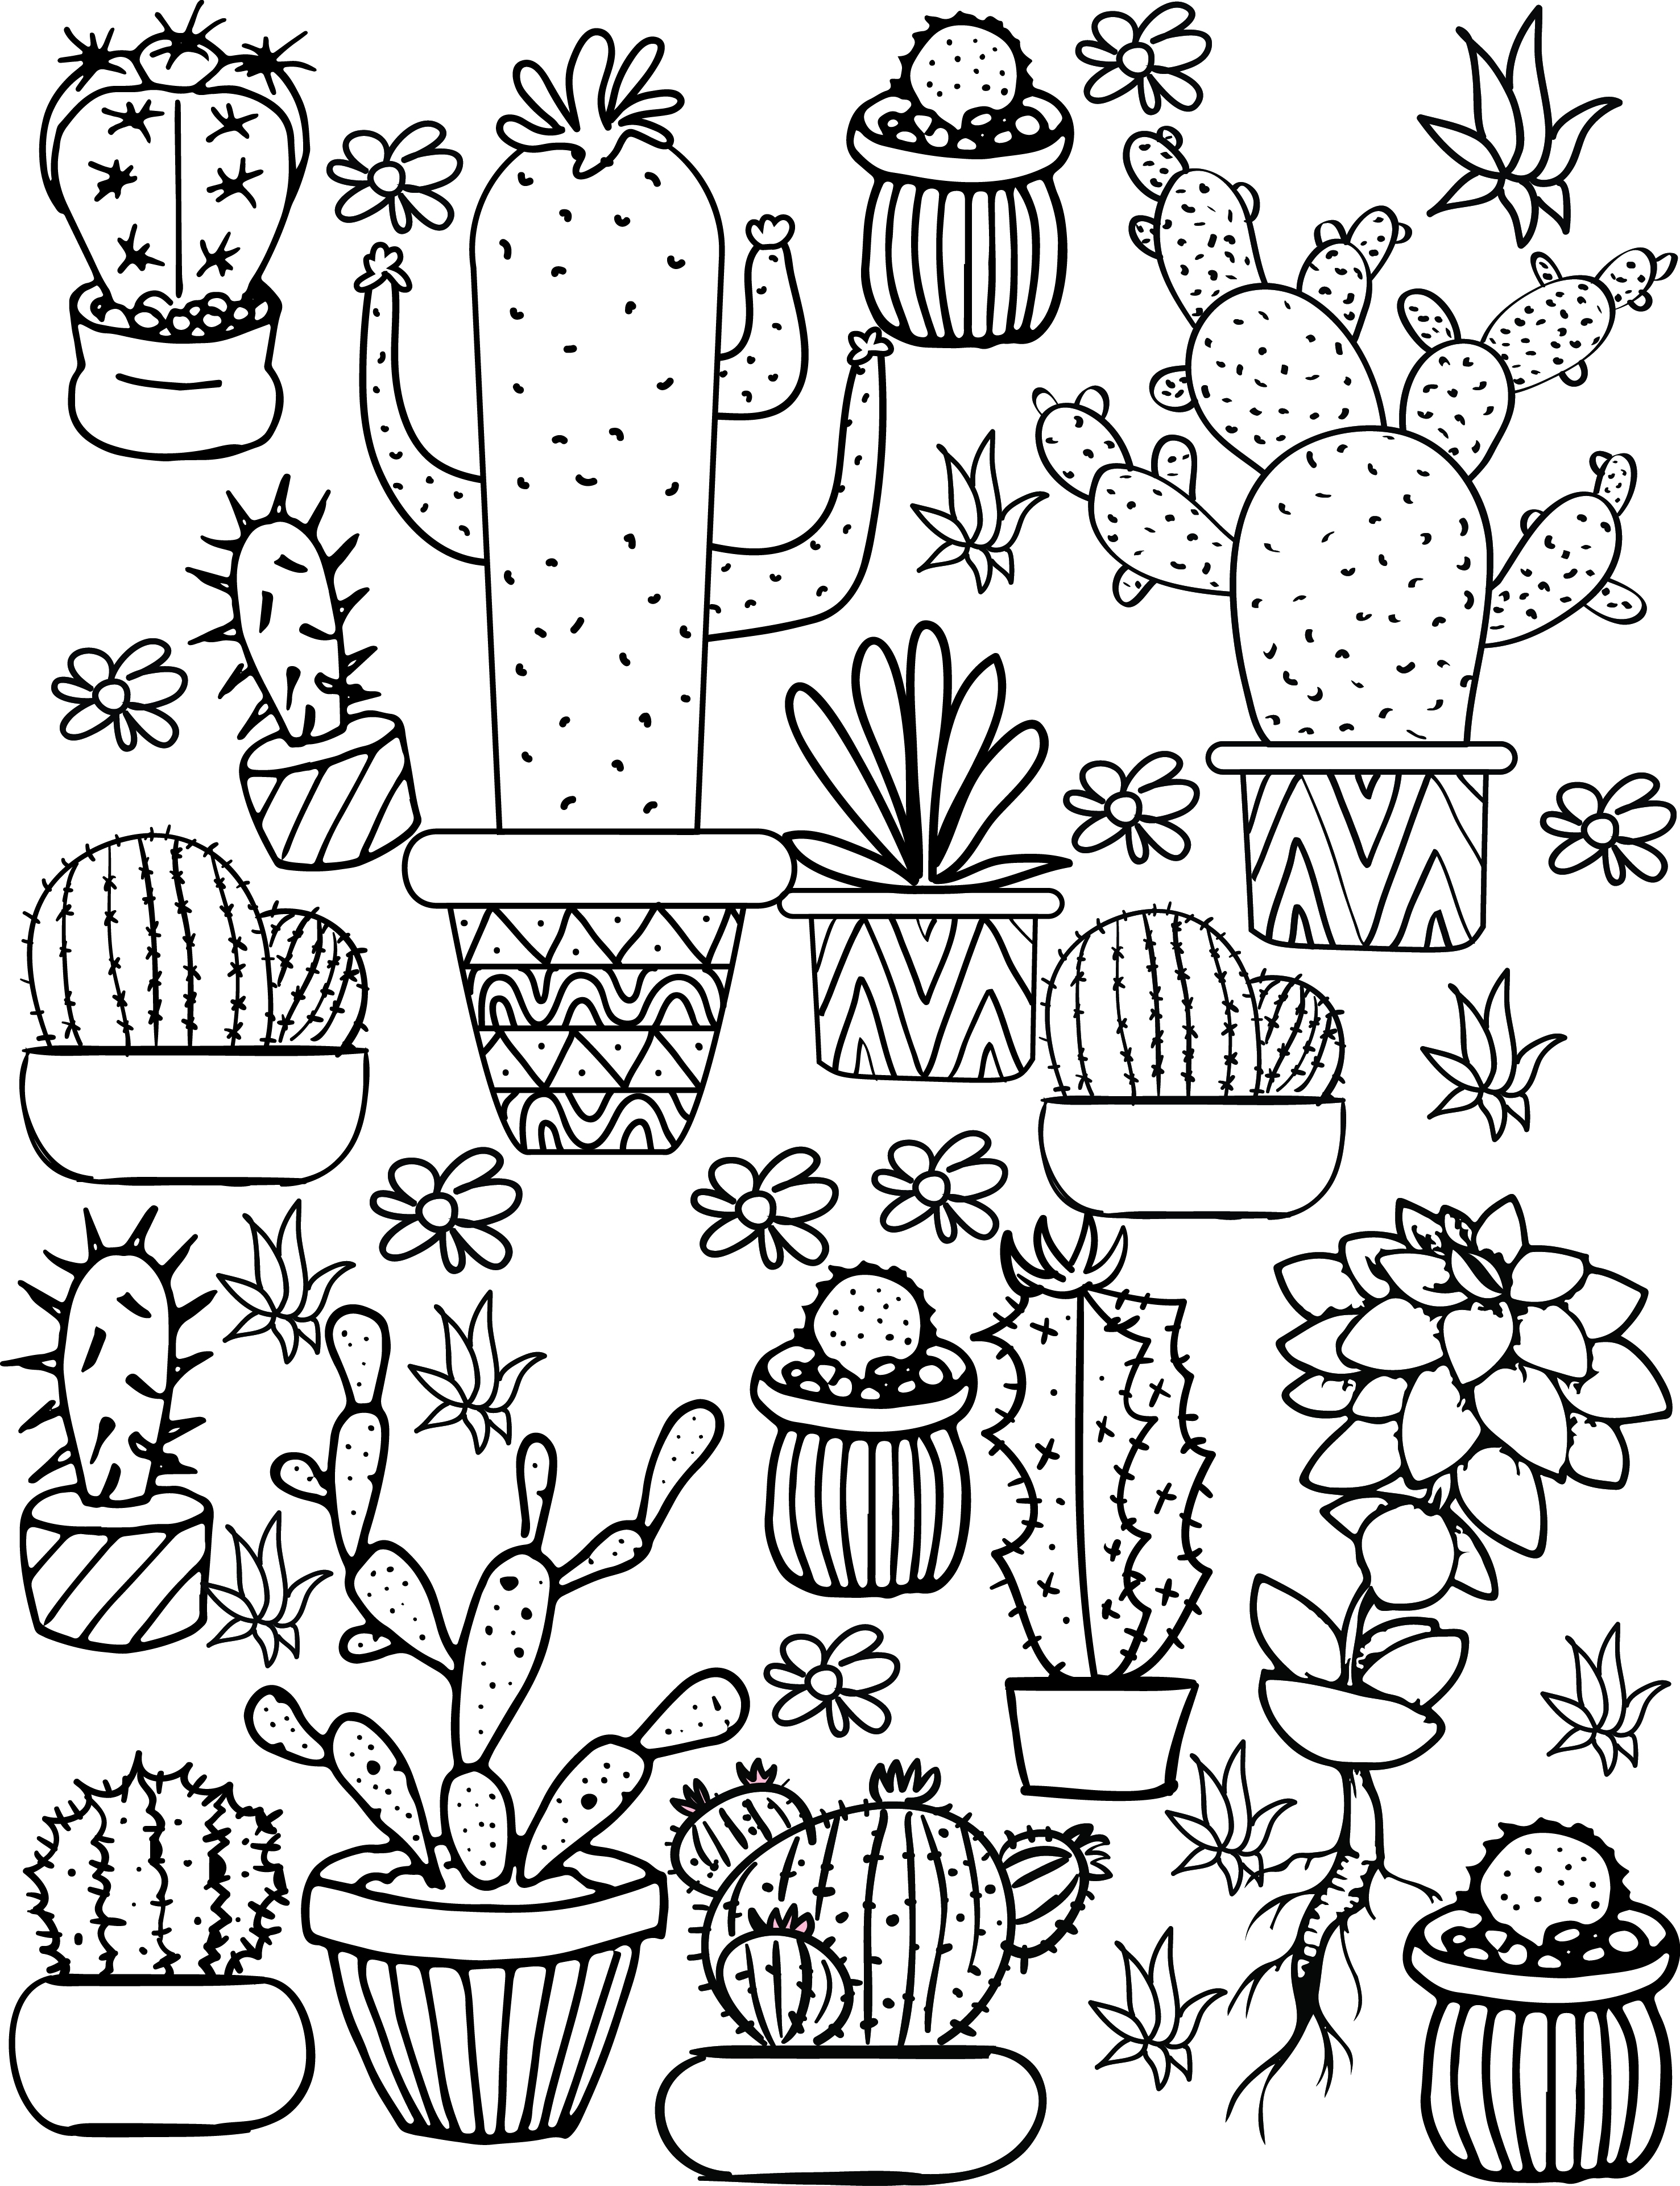 succulent coloring page - cactus and succulent printable adult coloring pages